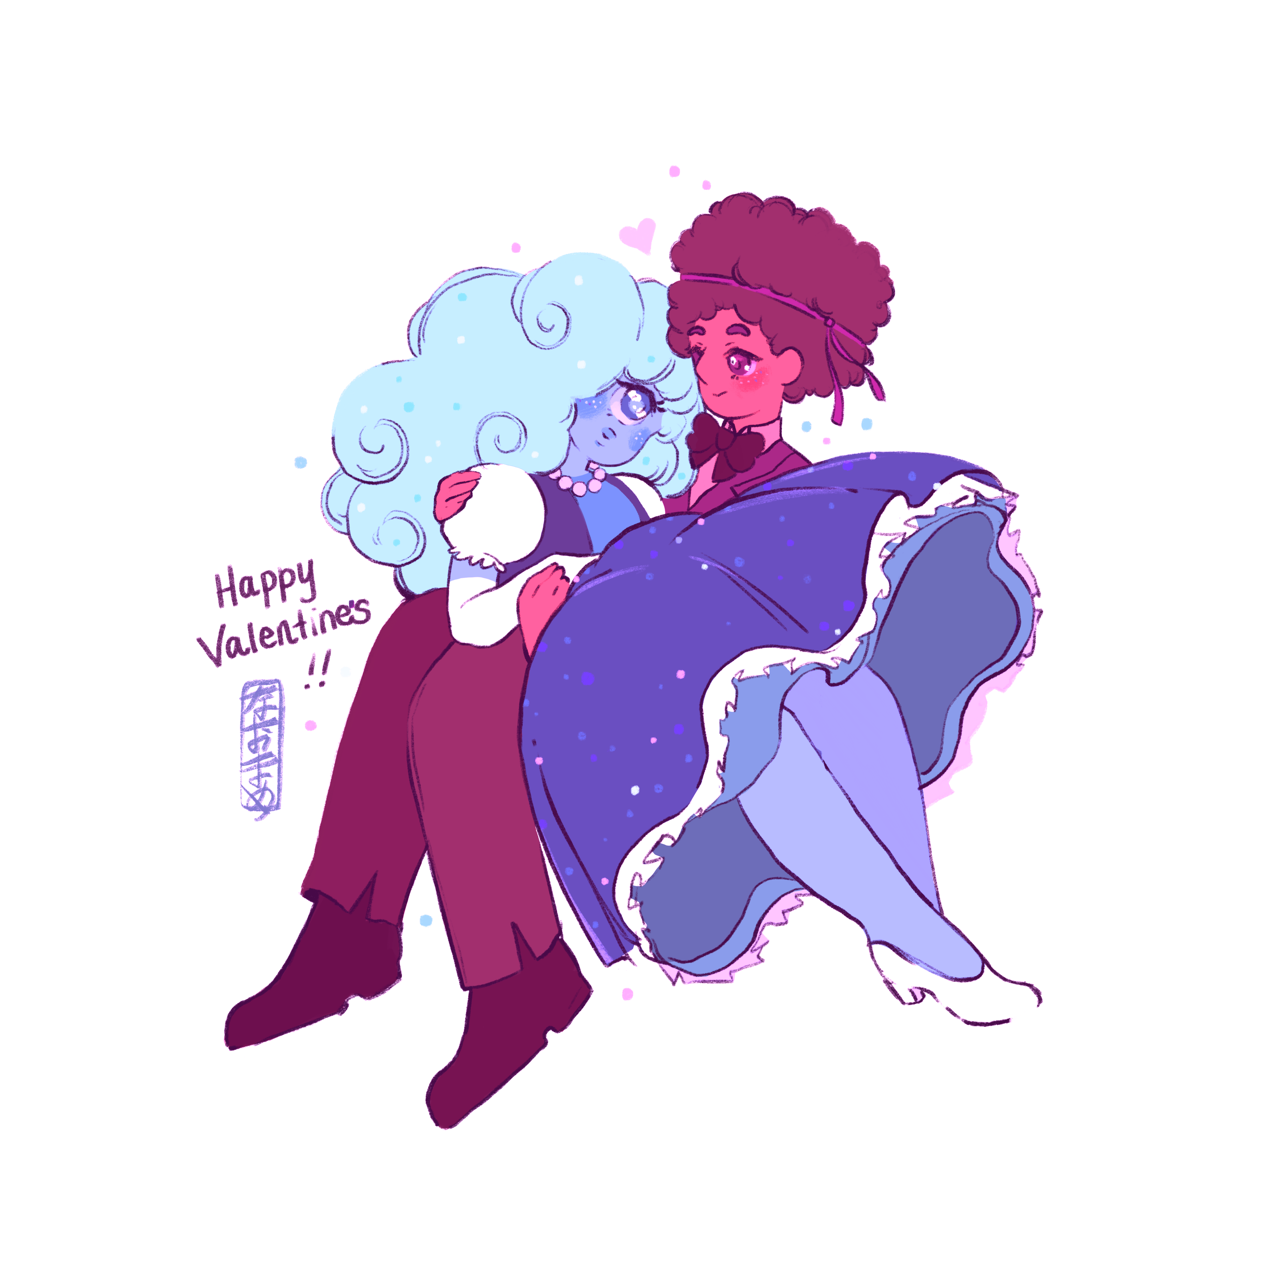 Quick drawing of my two of my favourite characters from my favourite show Steven Universe! Happy Valentine's Day